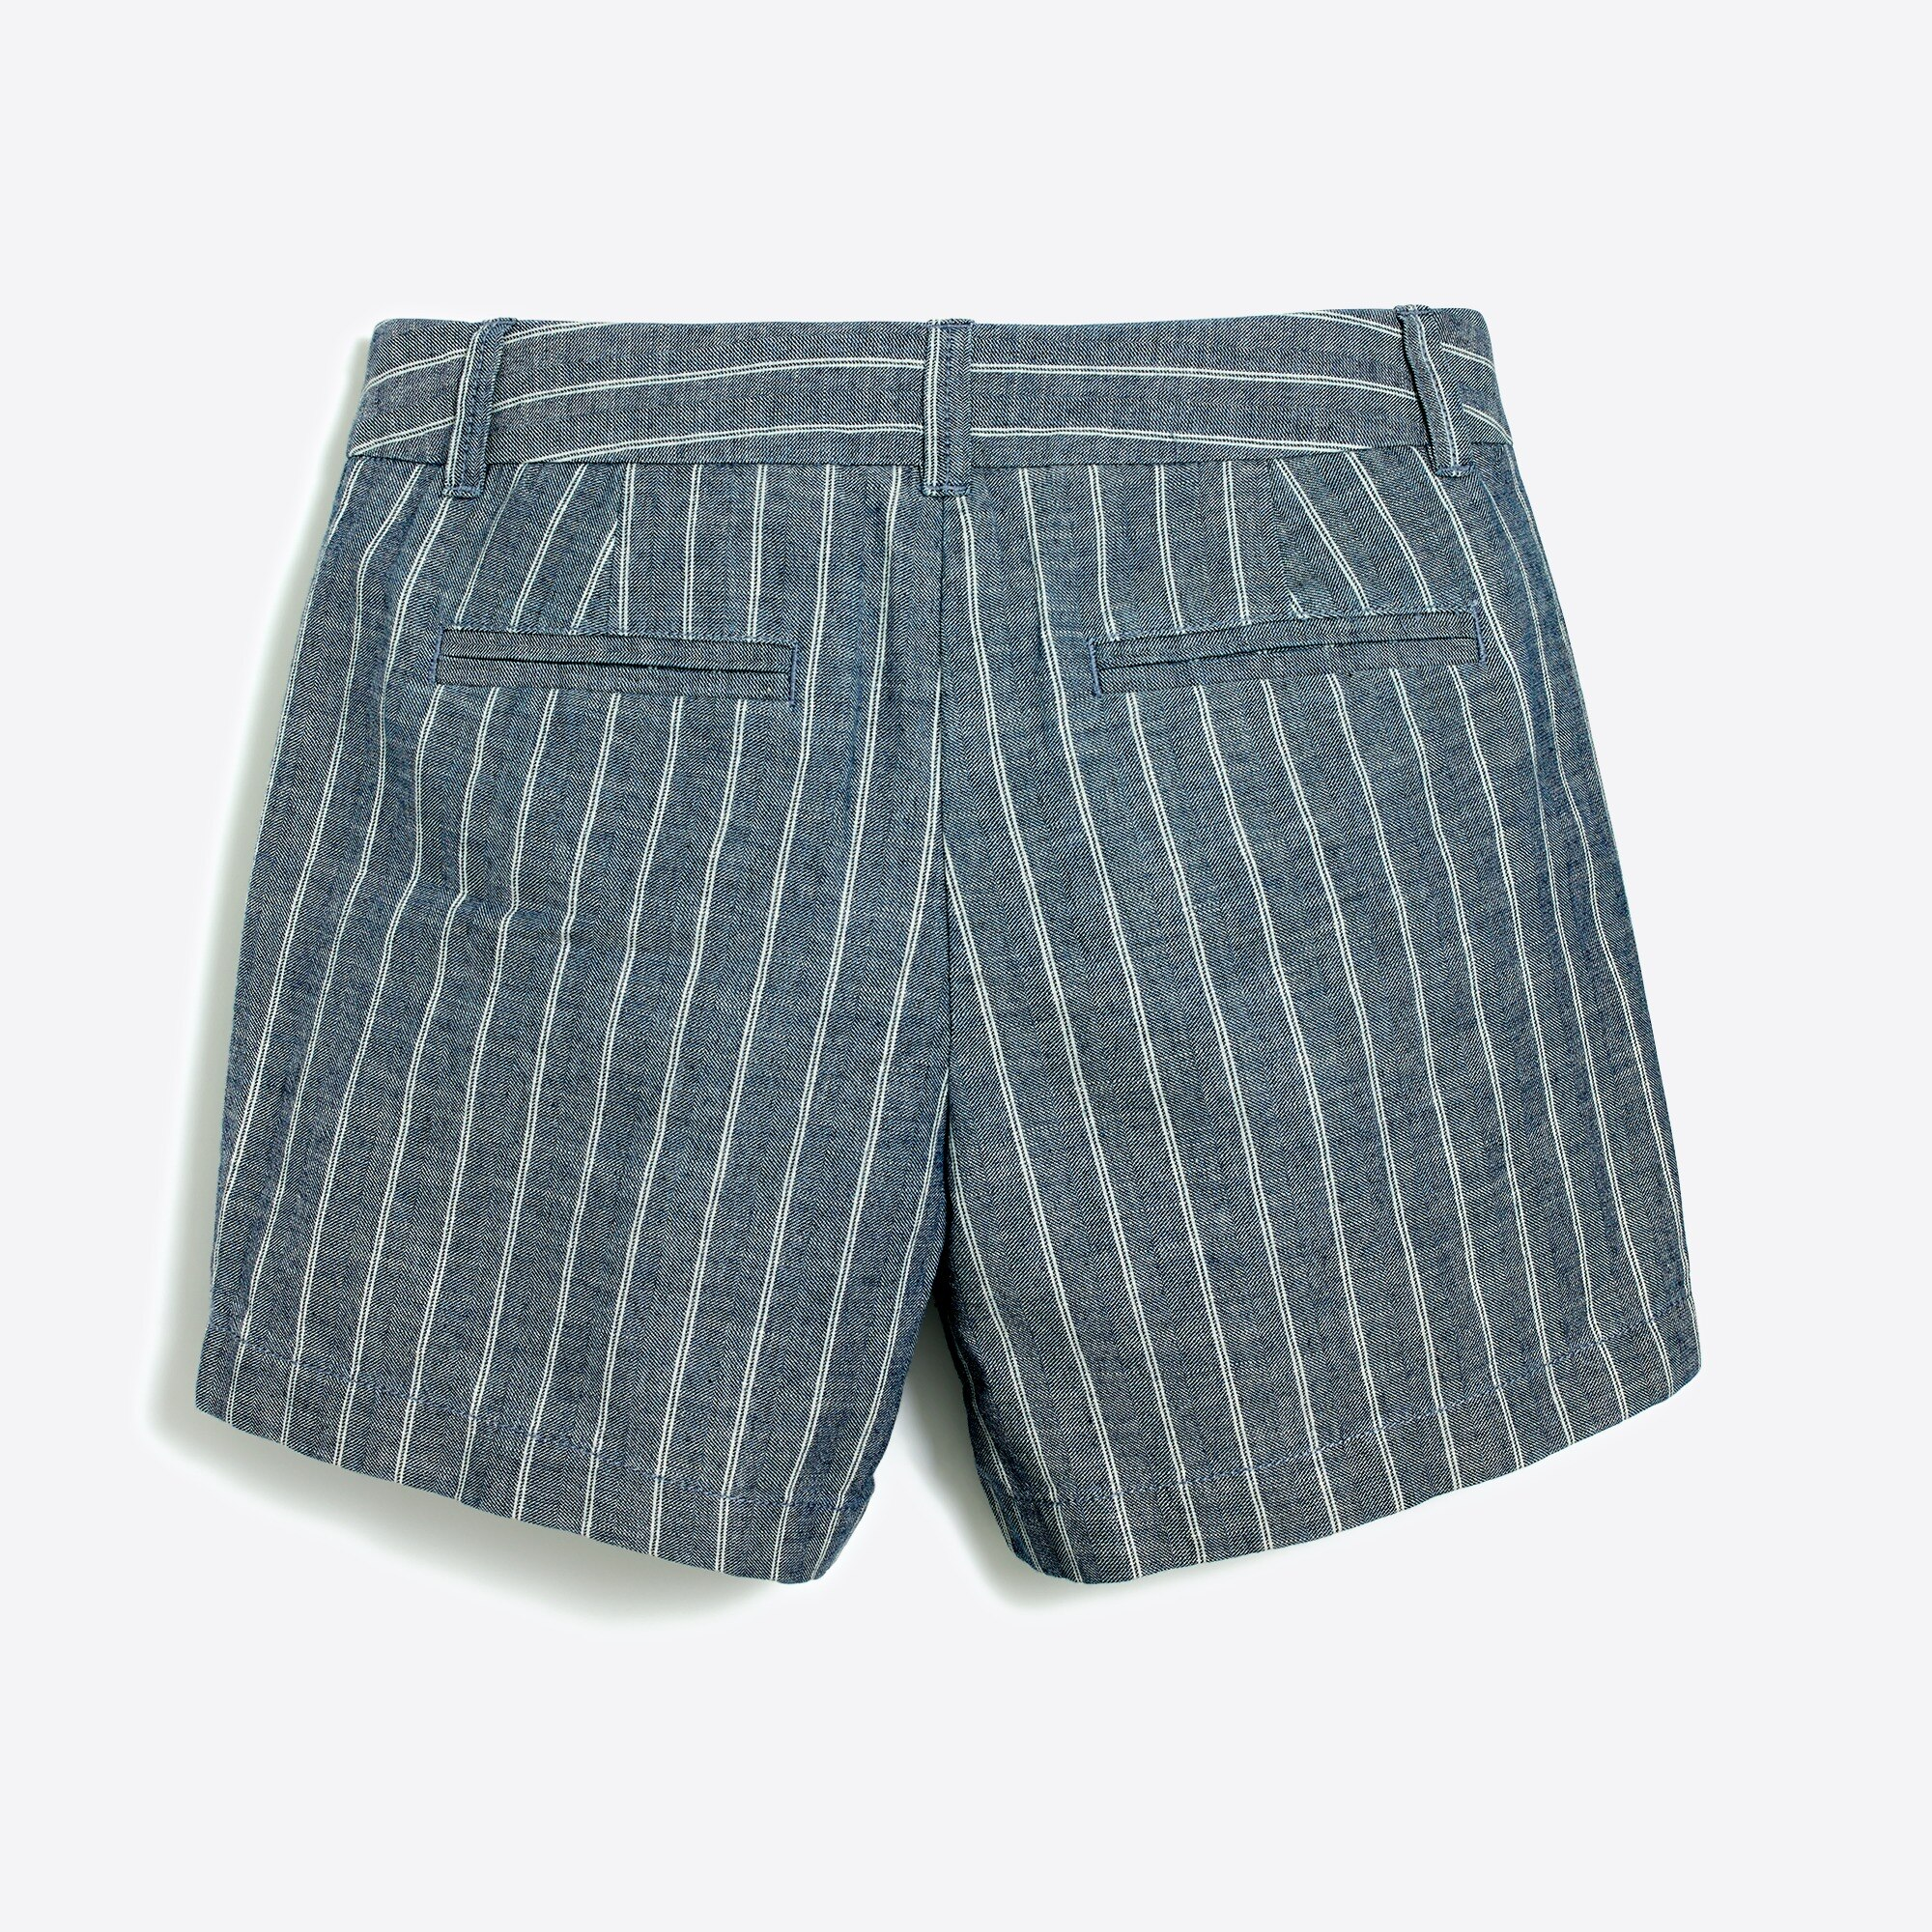 "Image 2 for 5"" cotton striped short"